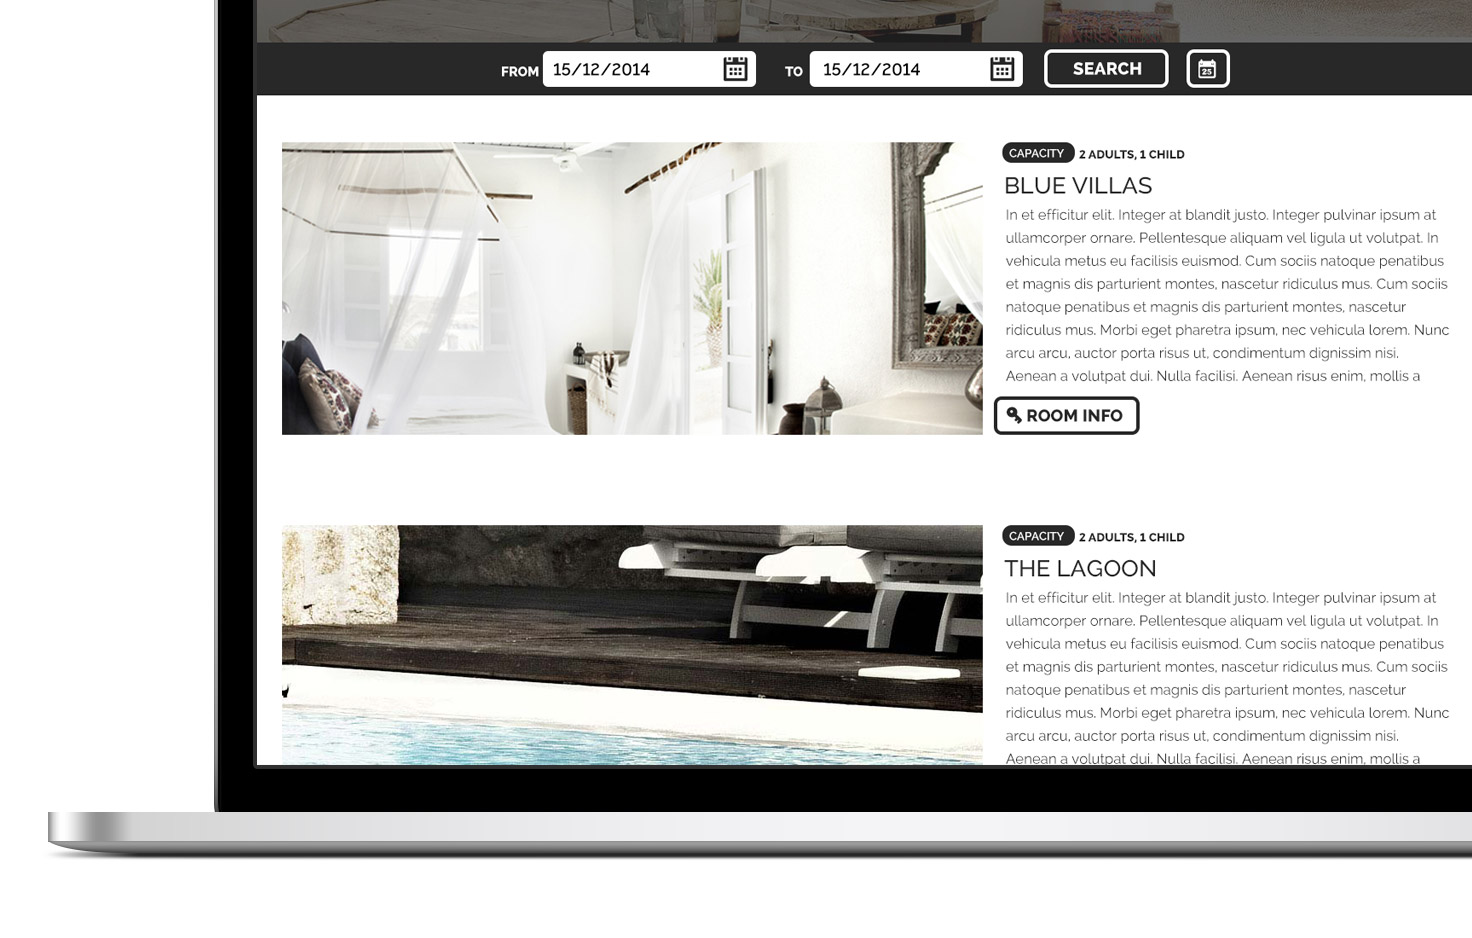 discoveroom website image